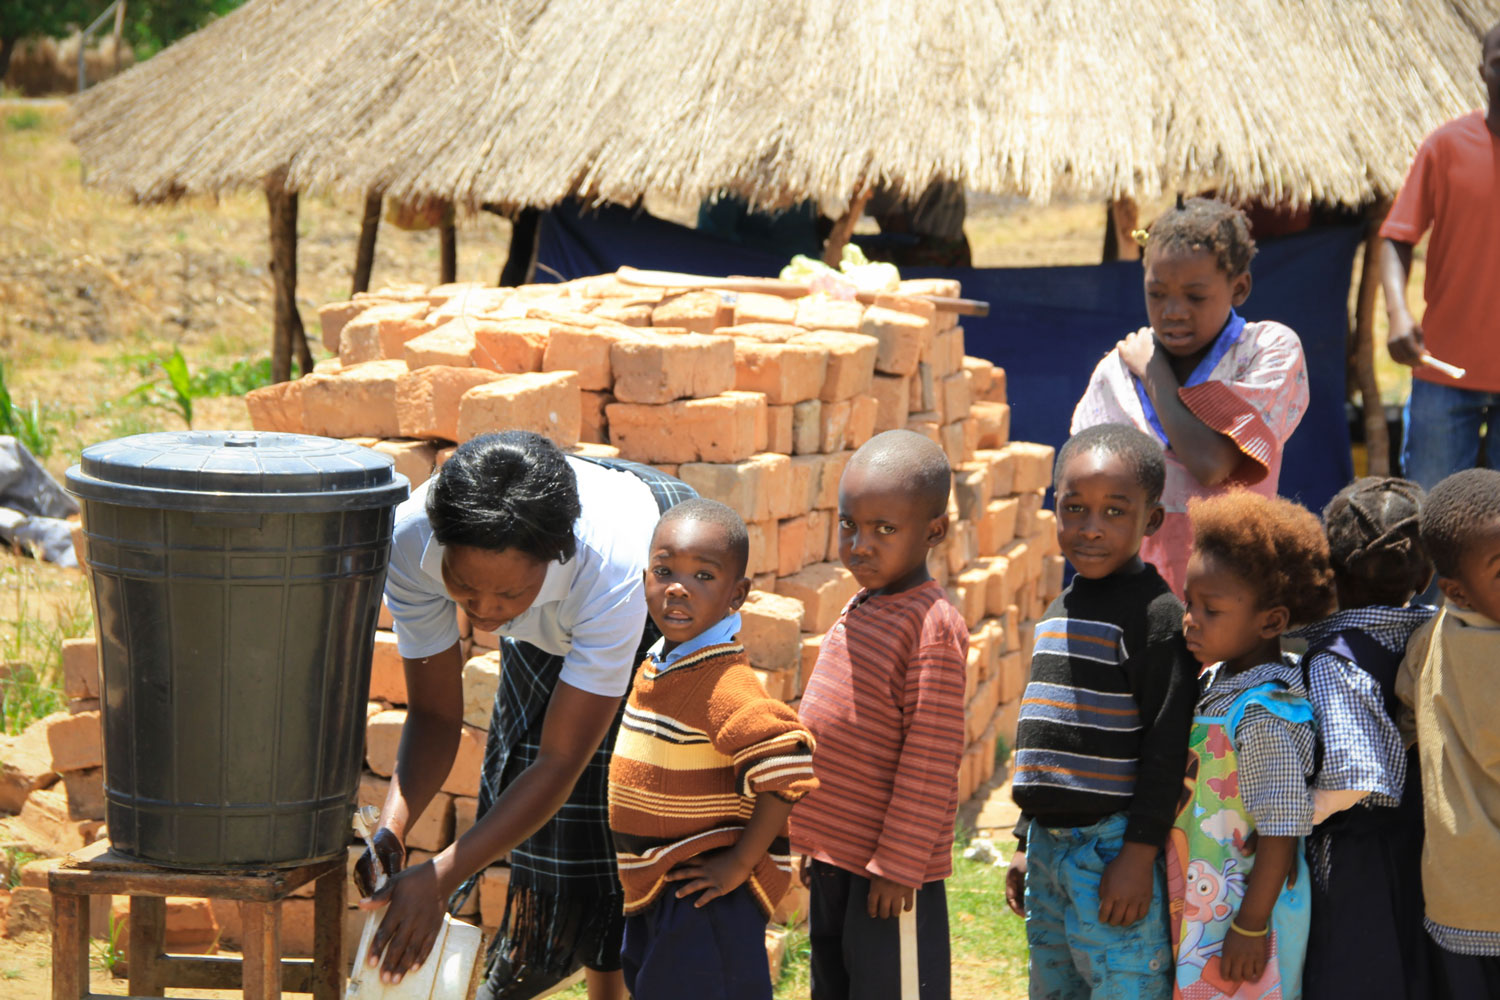 The children wait patiently as one of the Care Workers fills up a bucket of water.